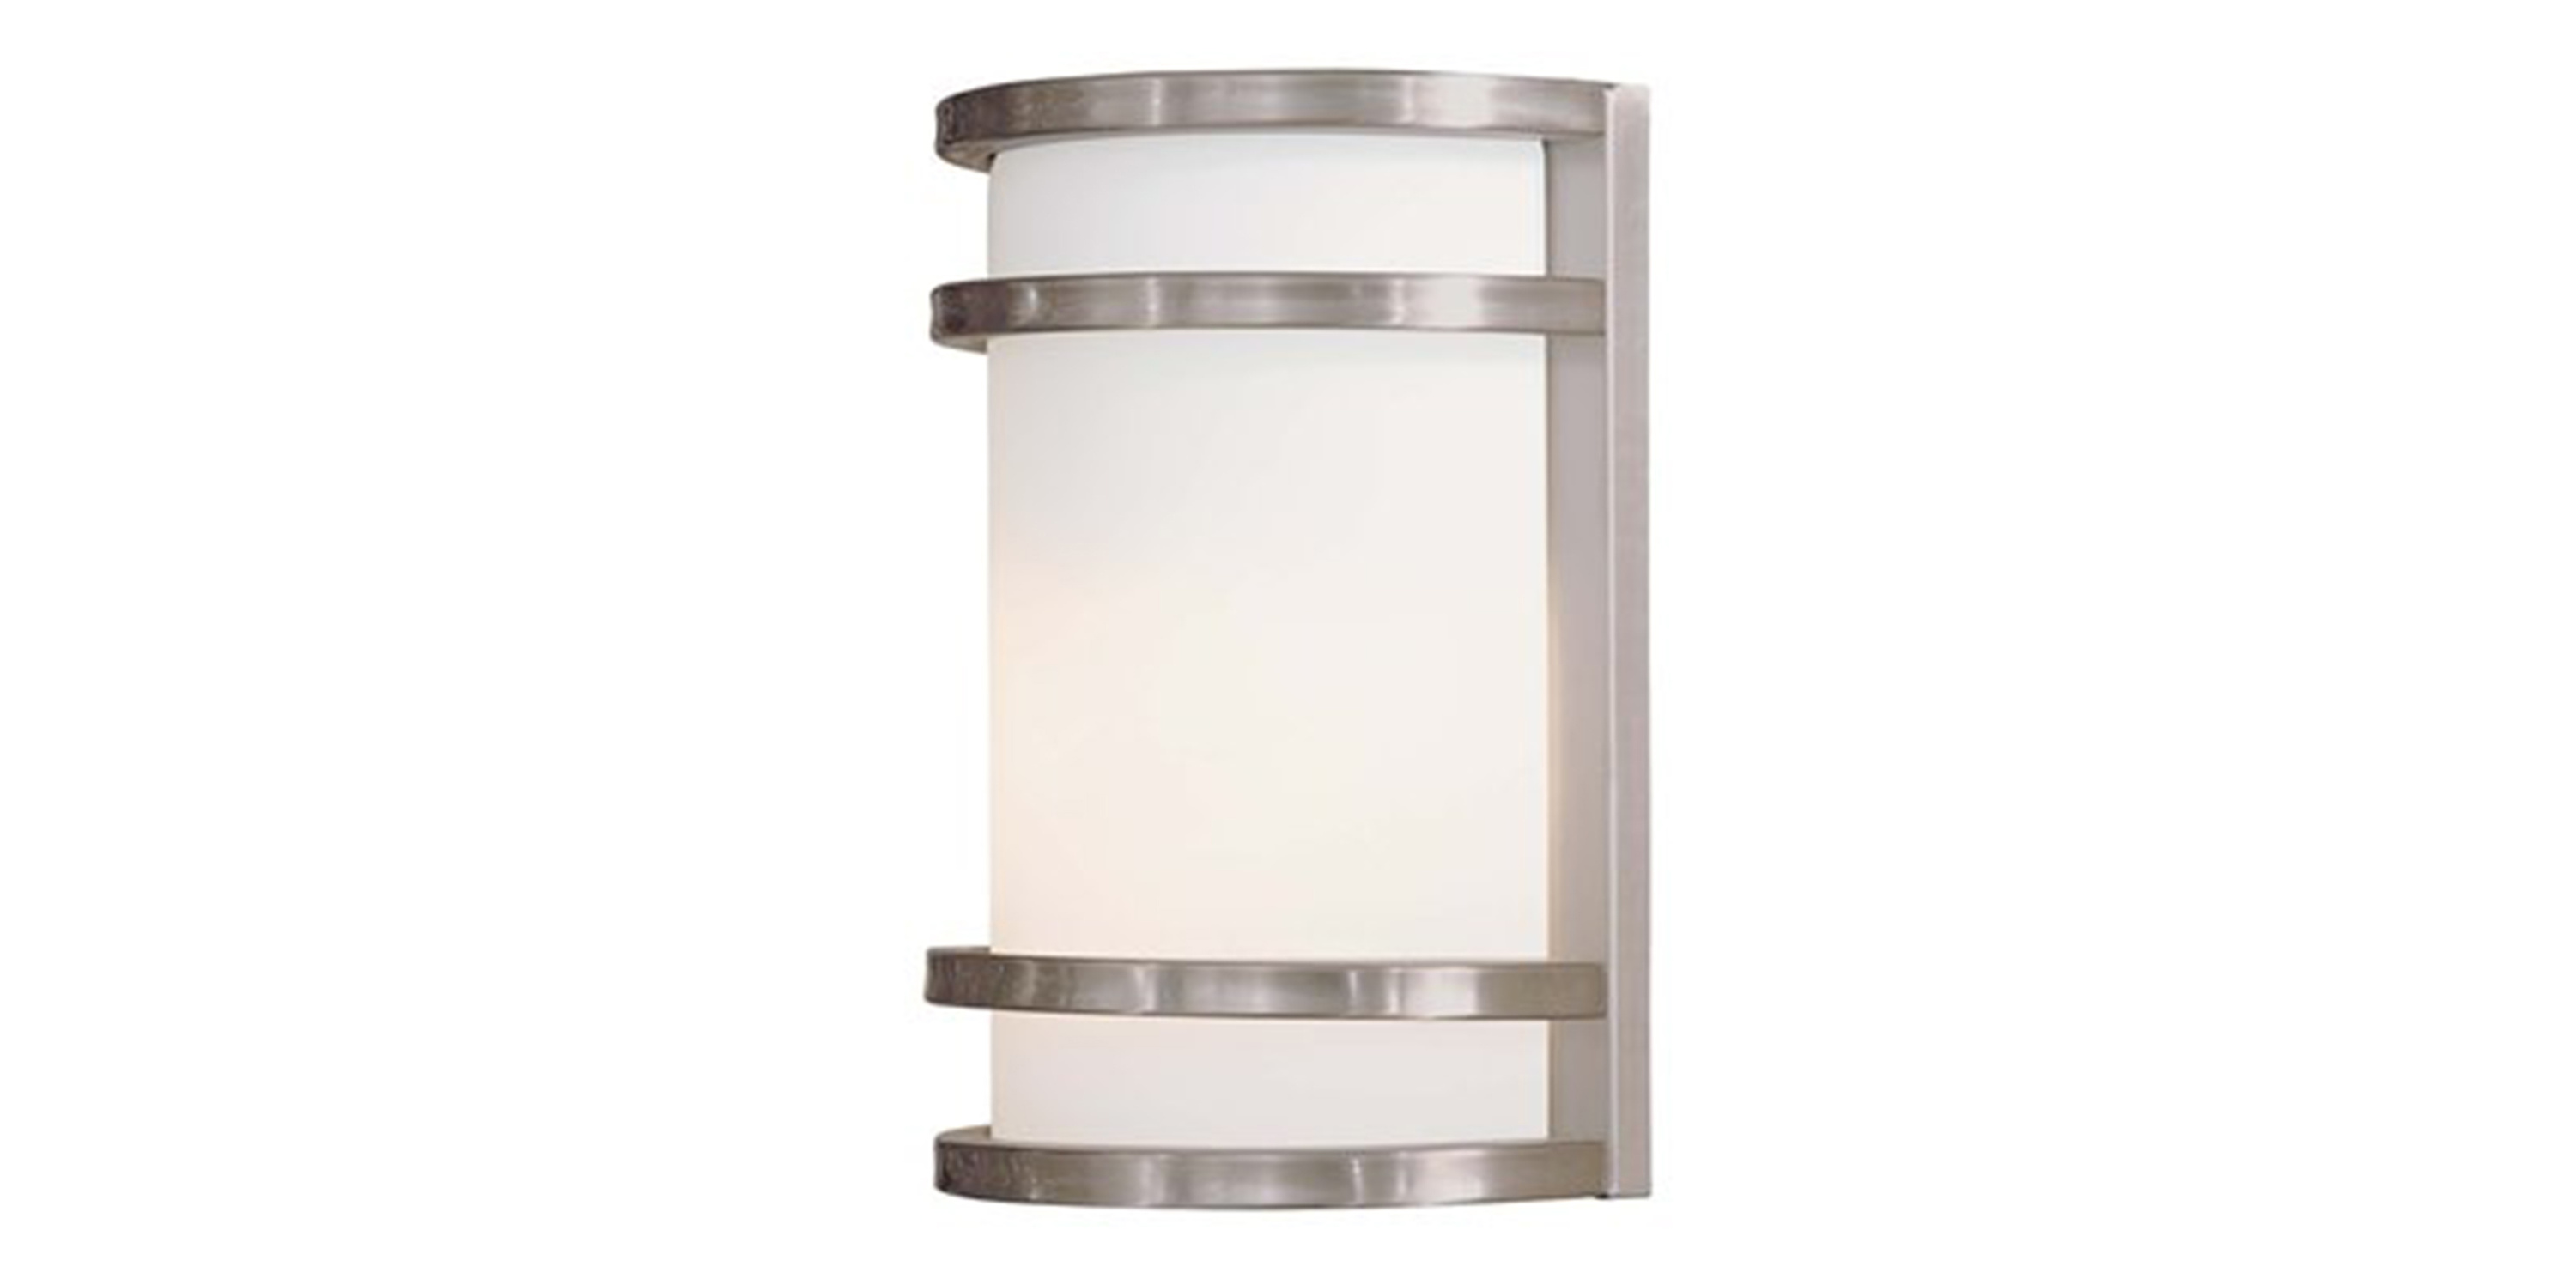 LED Outdoor Wall Sconce - RP Lighting + Fans on Outdoor Wall Sconce Lighting id=51179